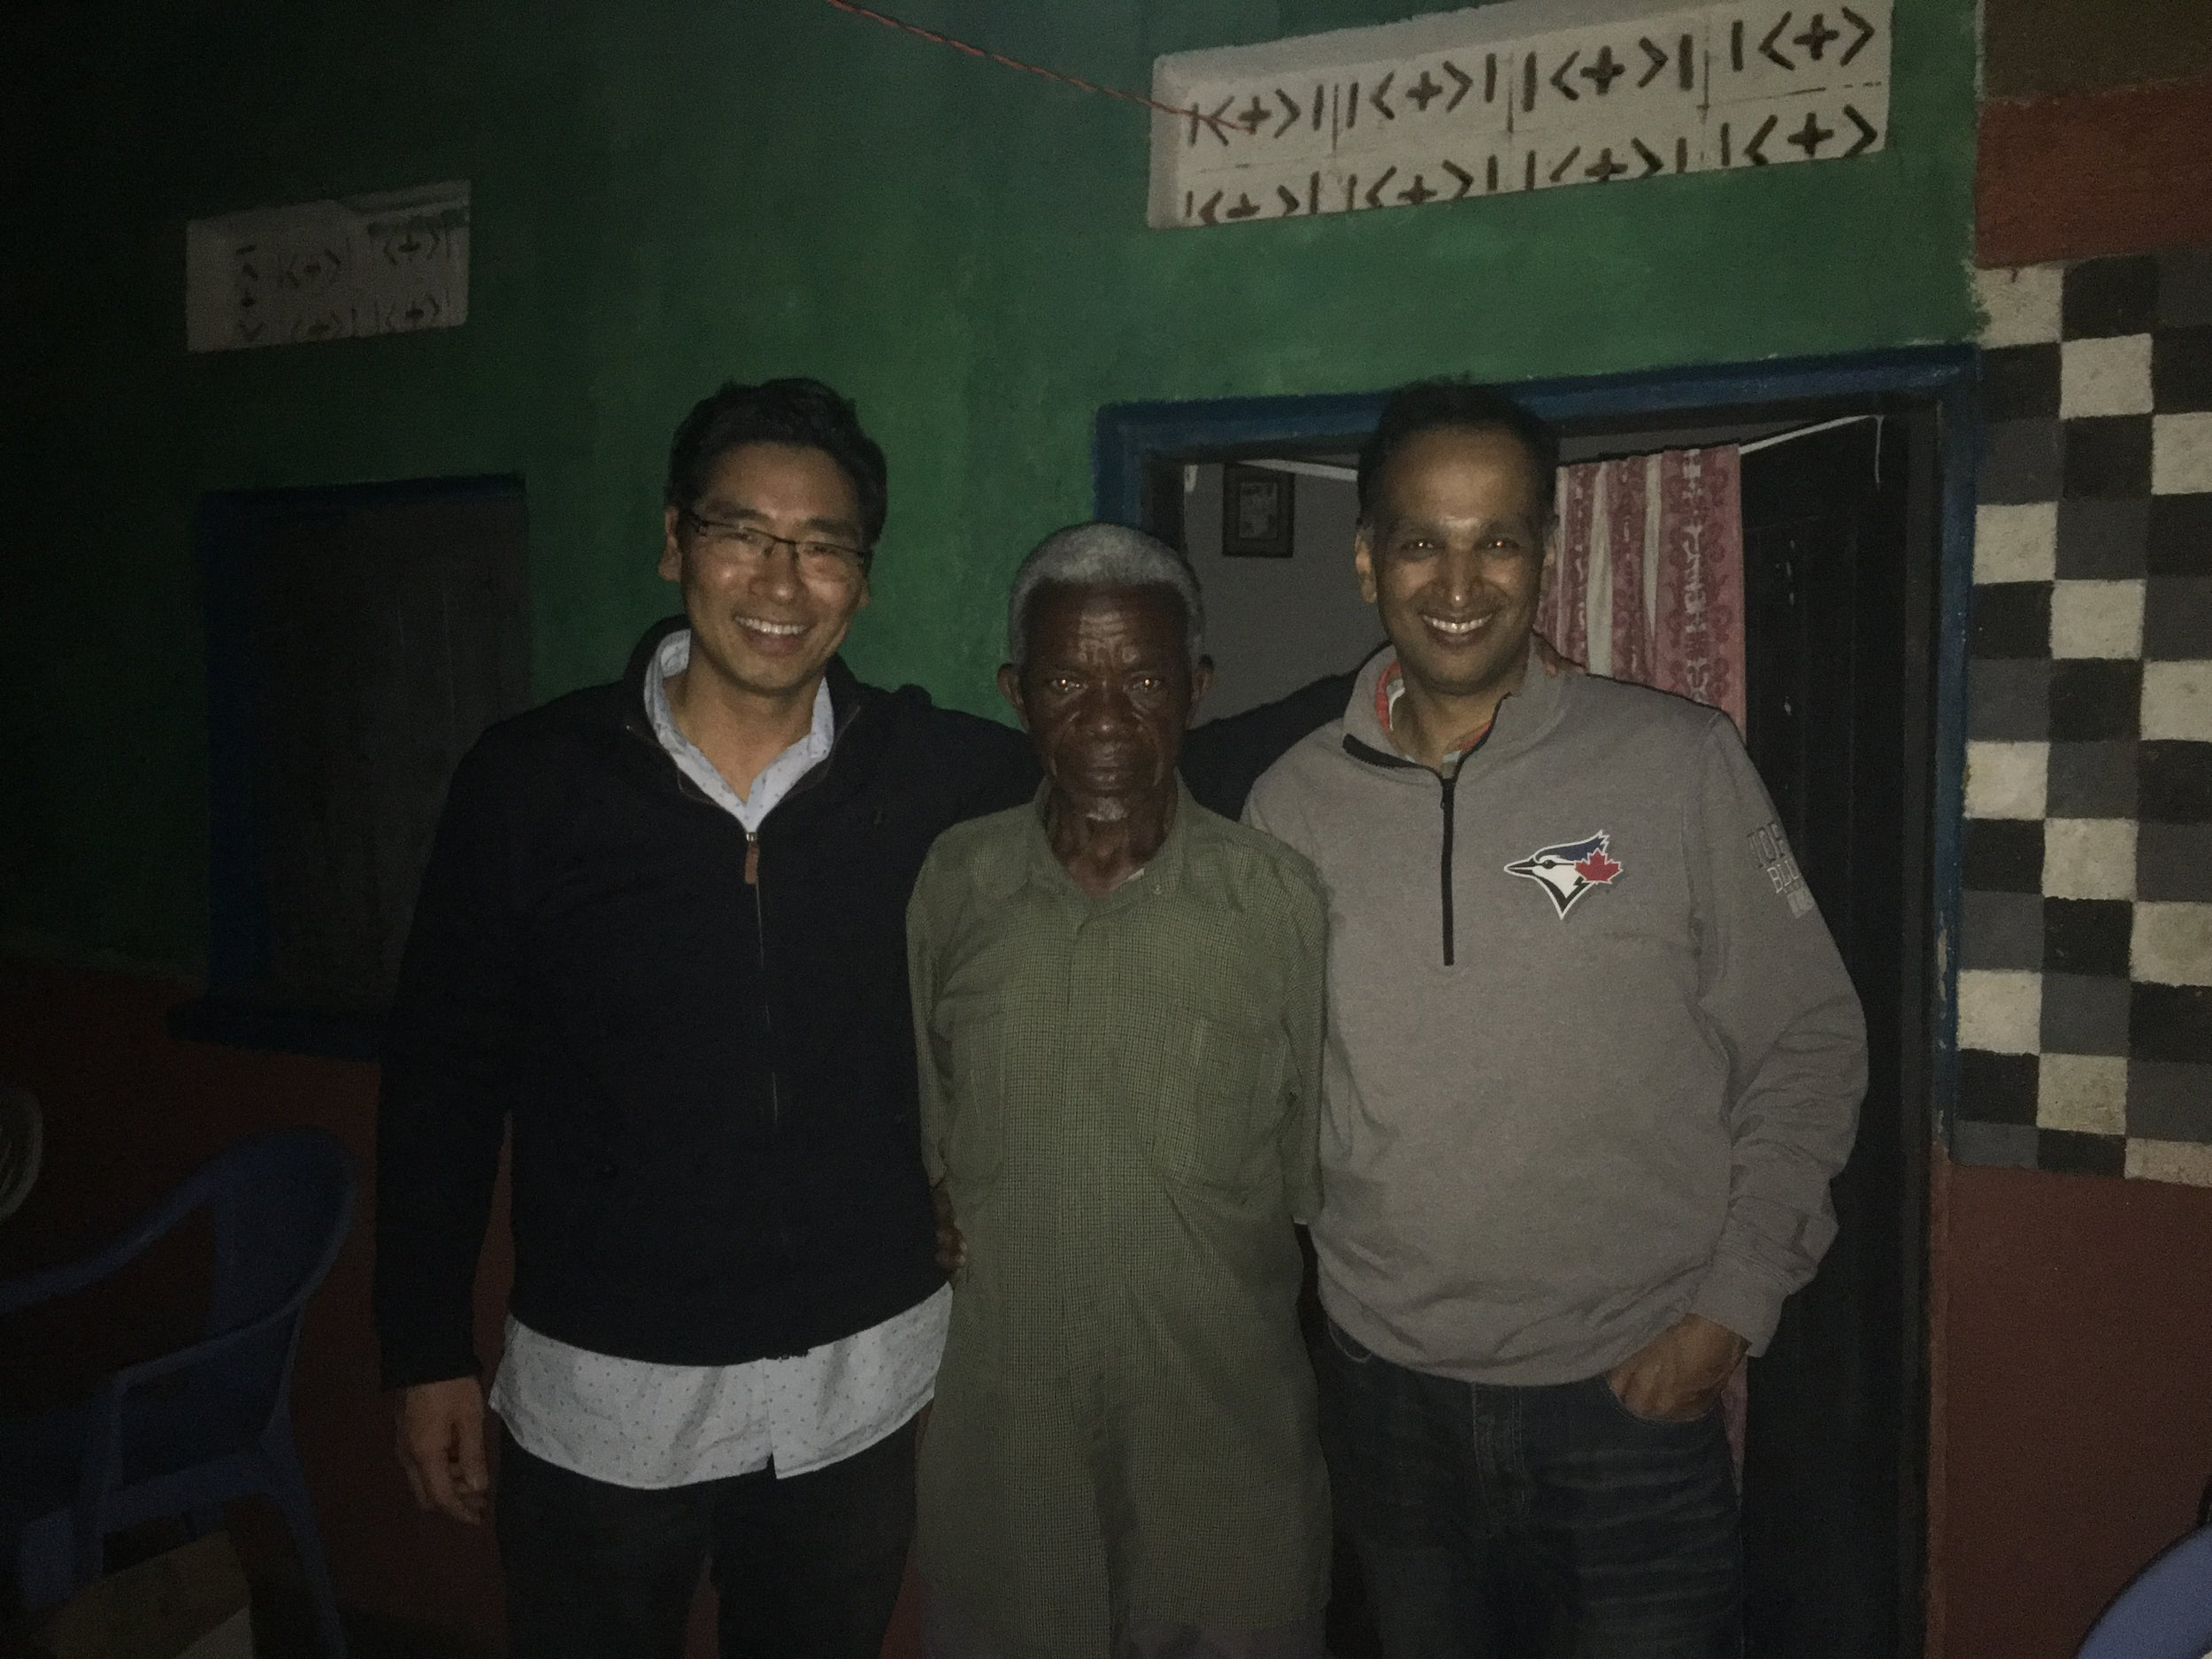 Dr. James and Dr. Rajiv with our host, John's father.